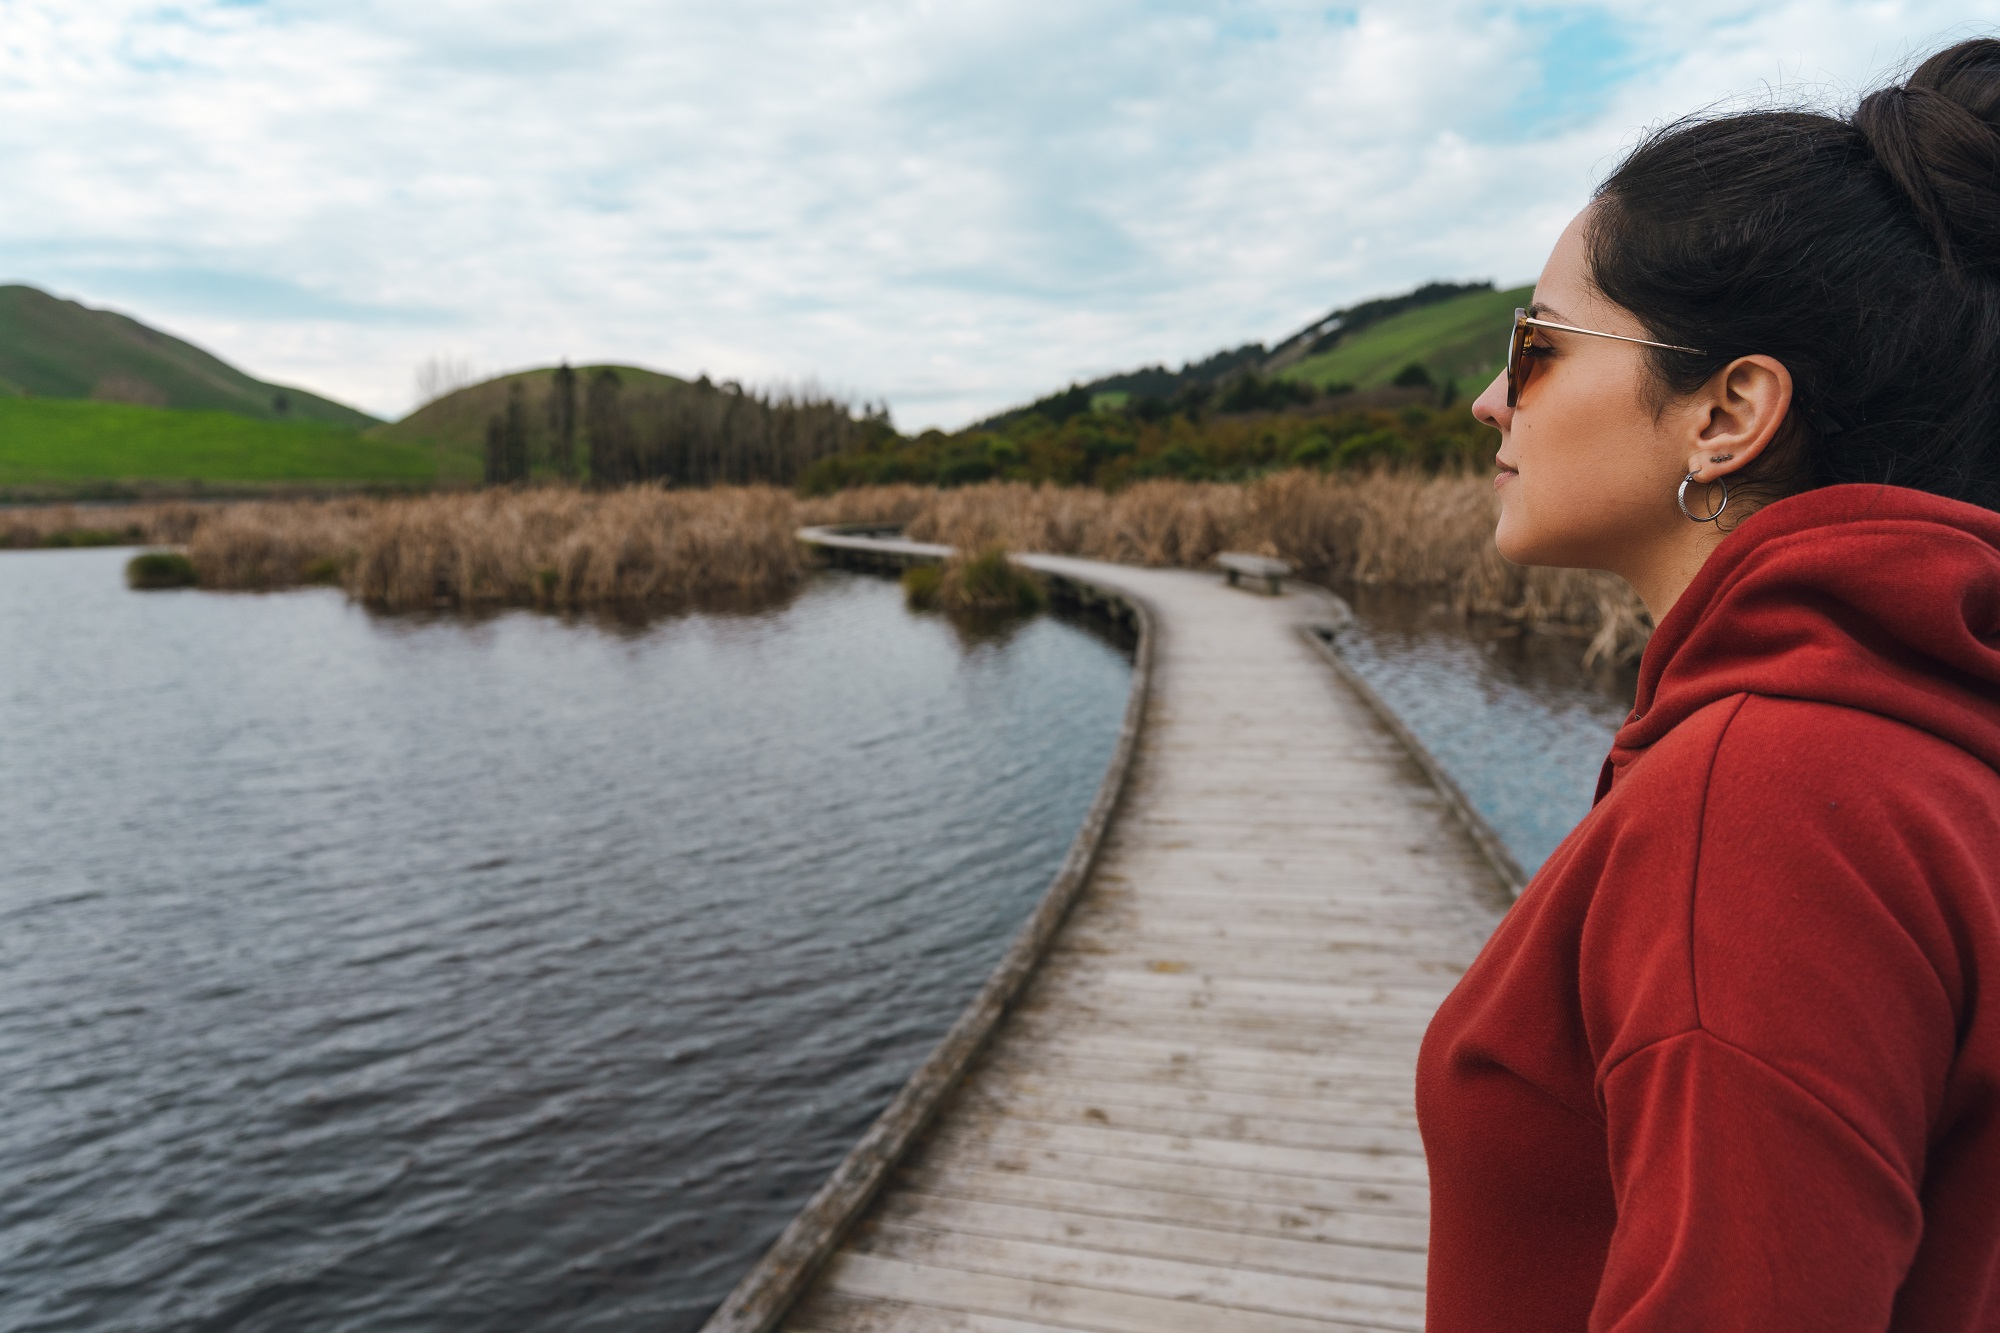 Brunette woman wearing hoodie and sunglasses stares out across some wetlands